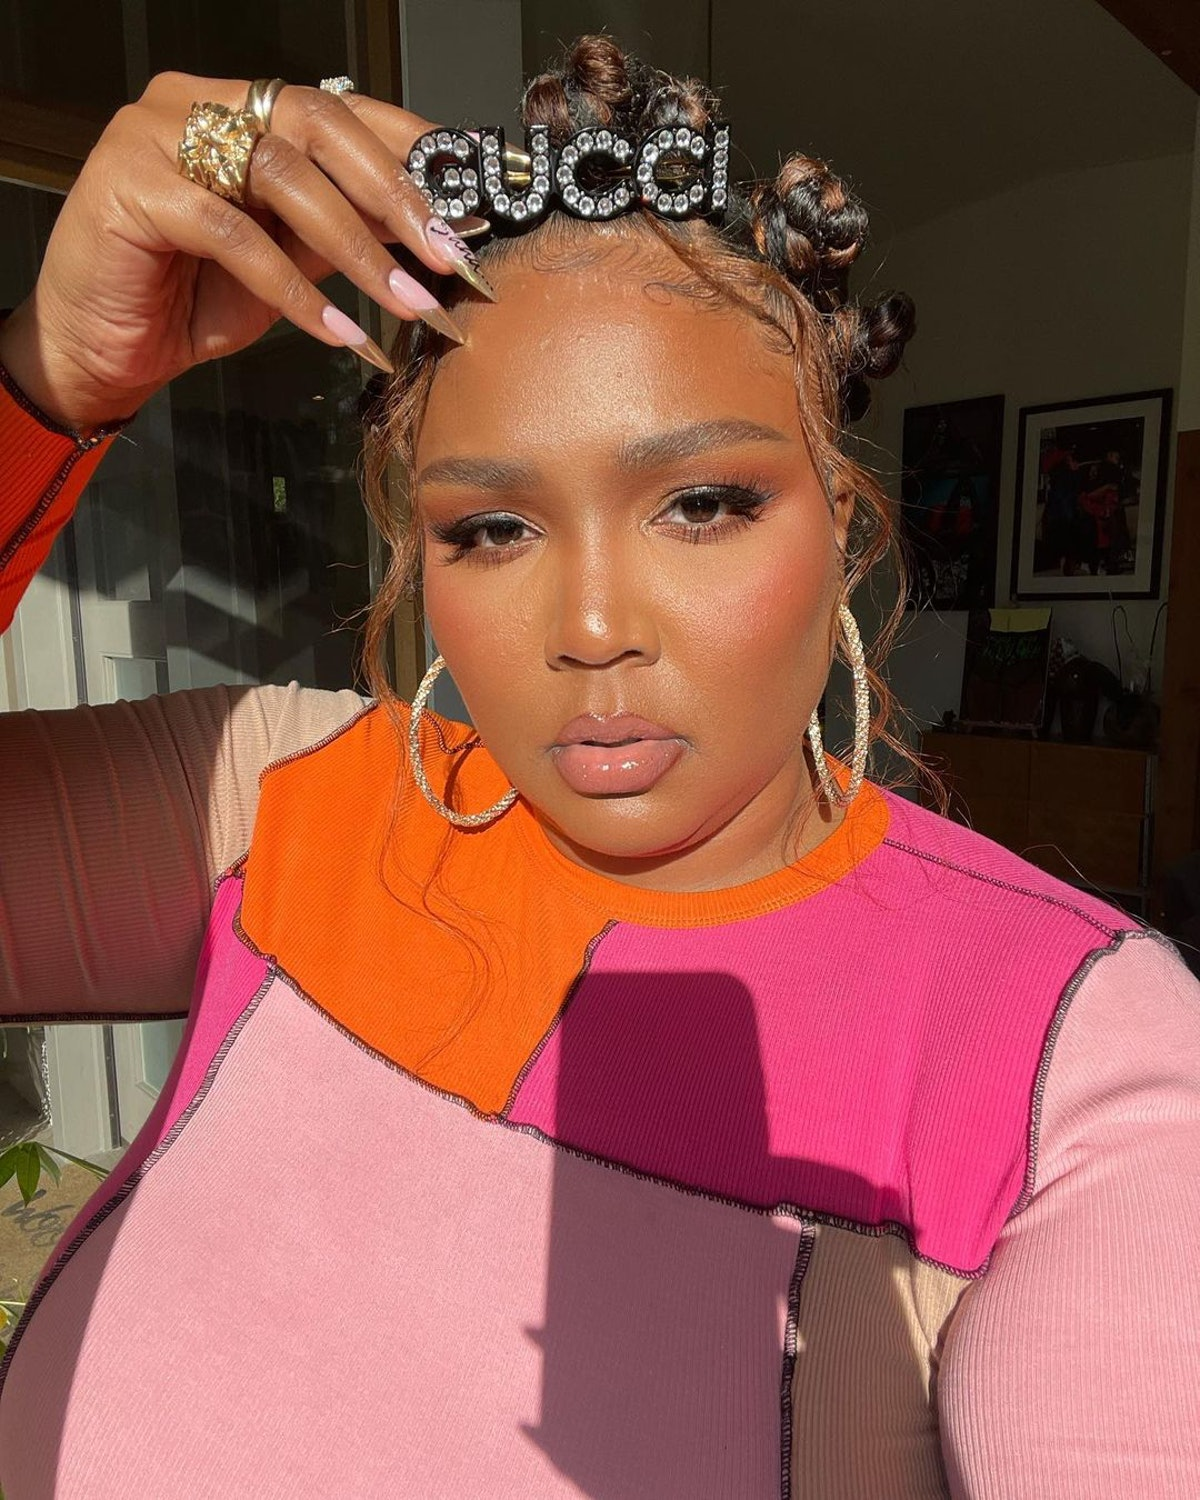 Lizzo selfie with Bantu knots, Gucci barrette, and gold nails